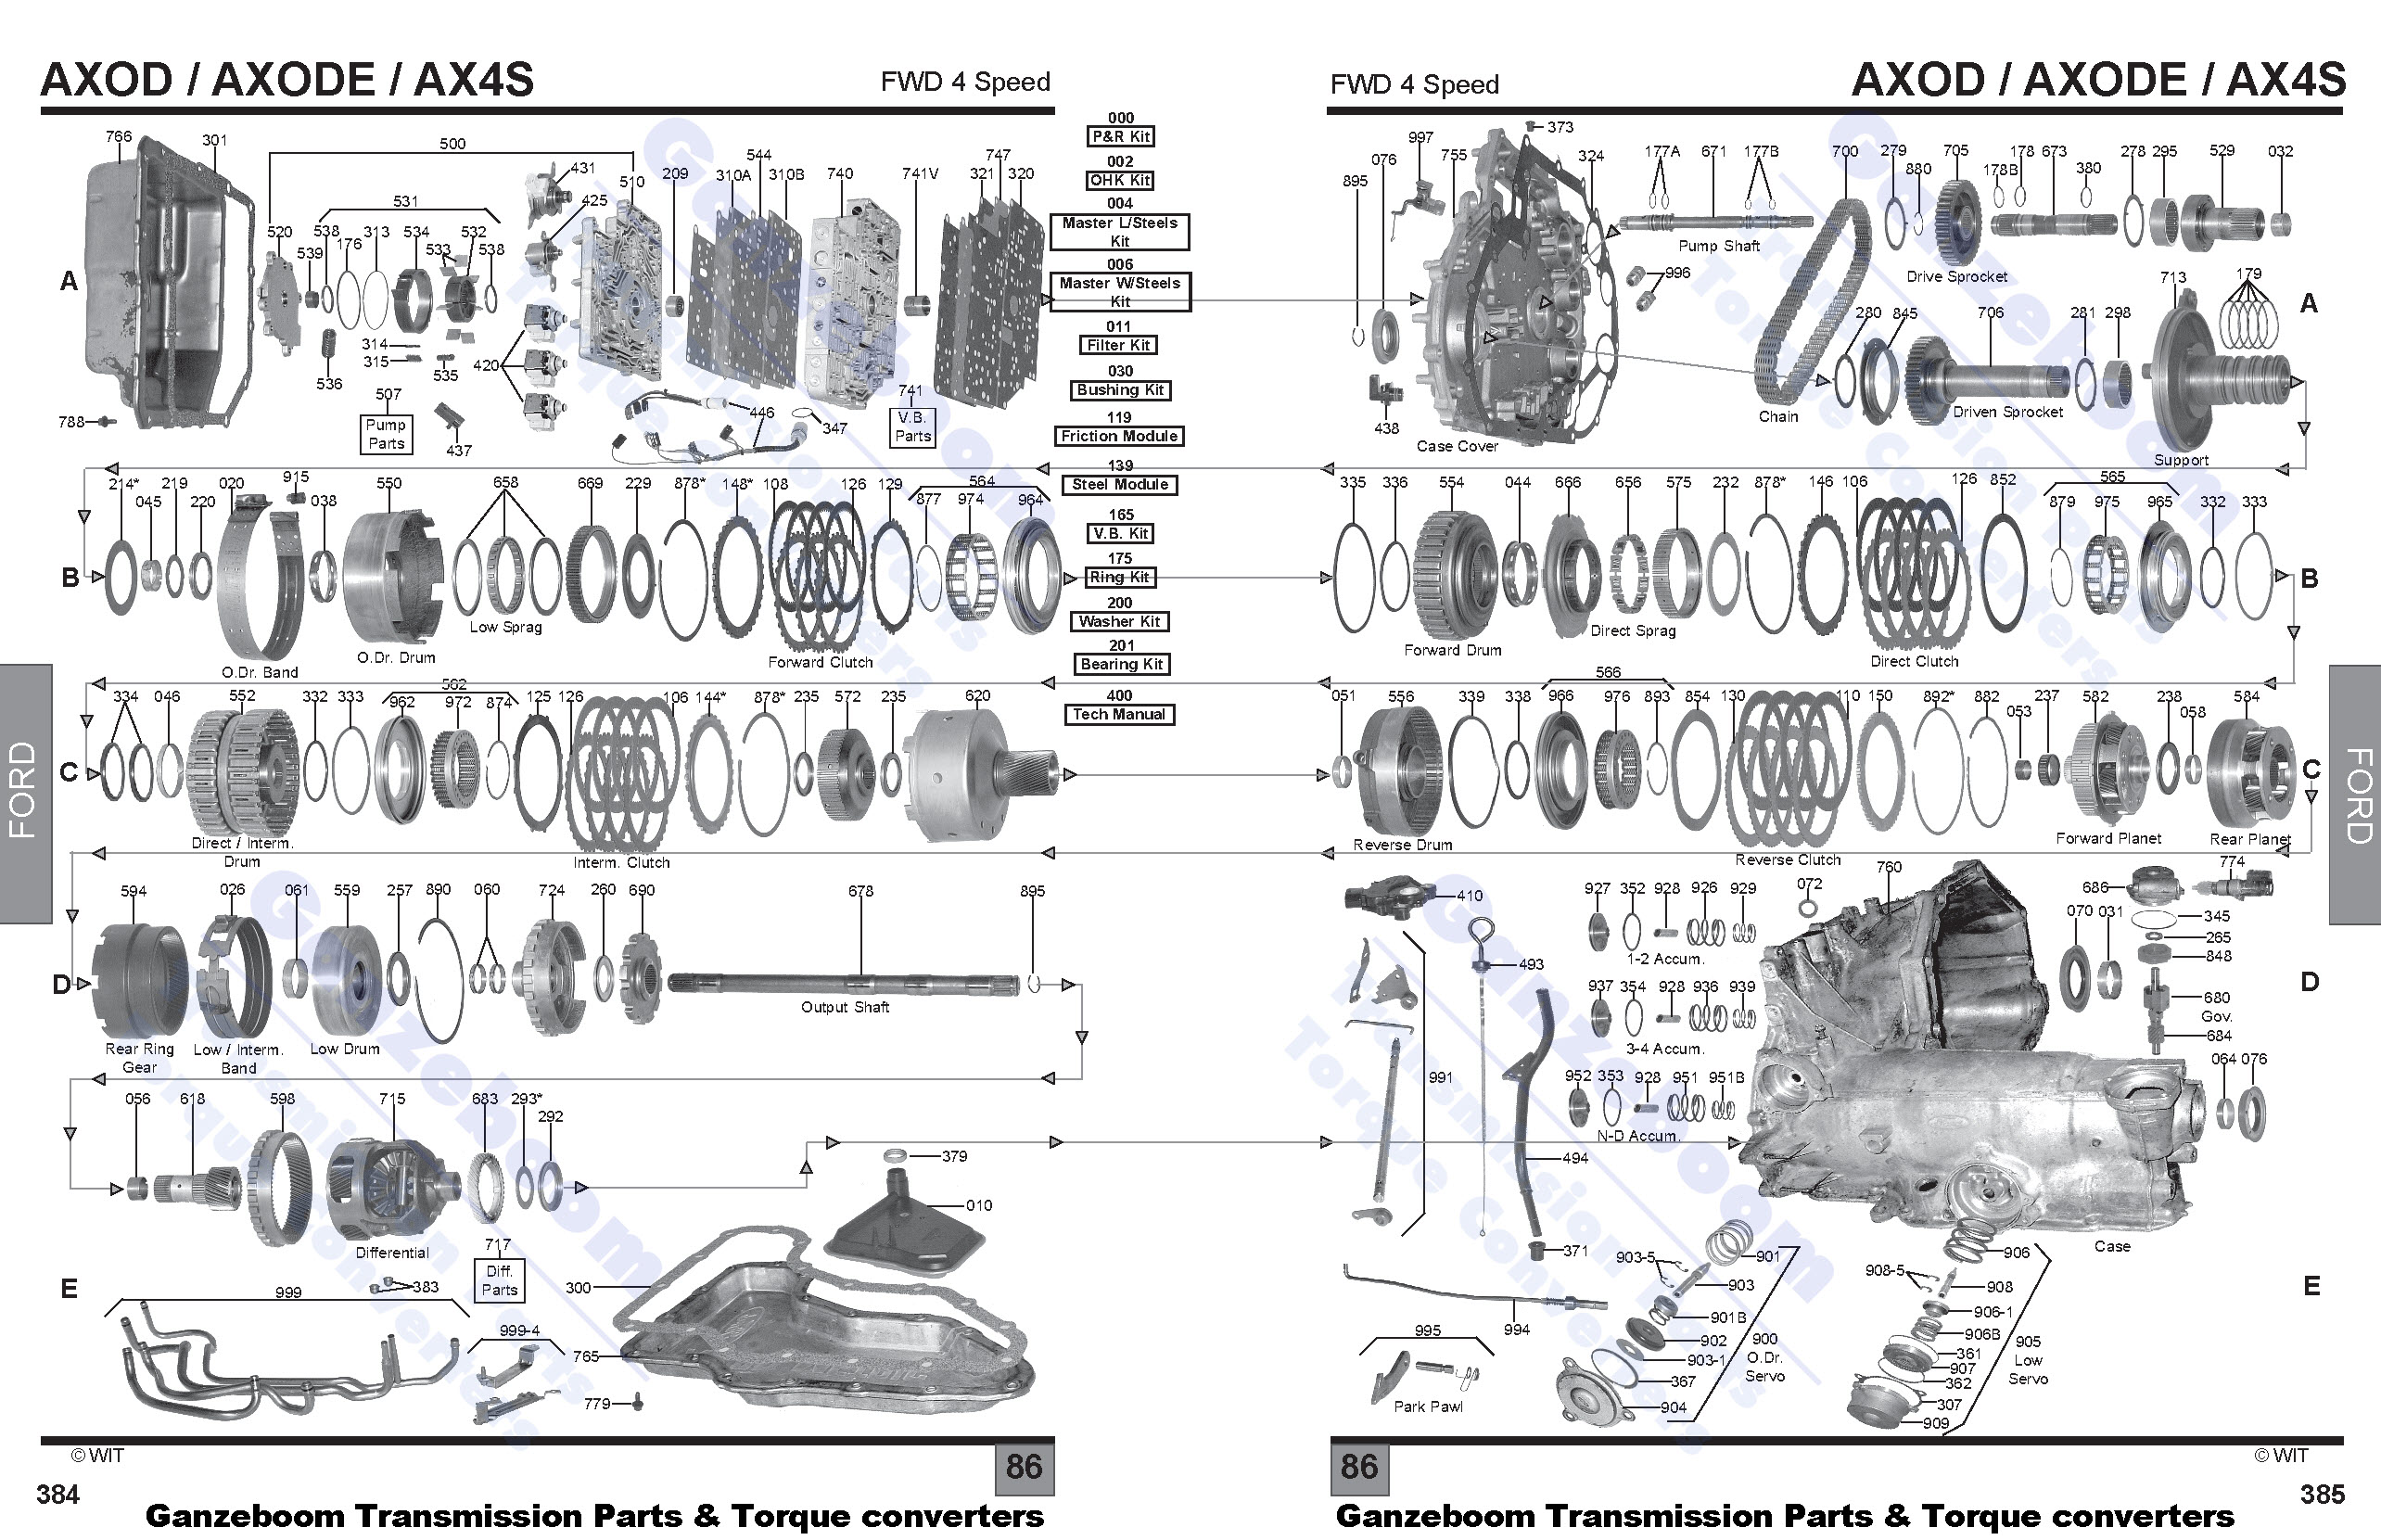 6f35 Transmission Diagram Schematic Diagrams Freestyle Engine Ford Electrical Work Wiring U2022 2007